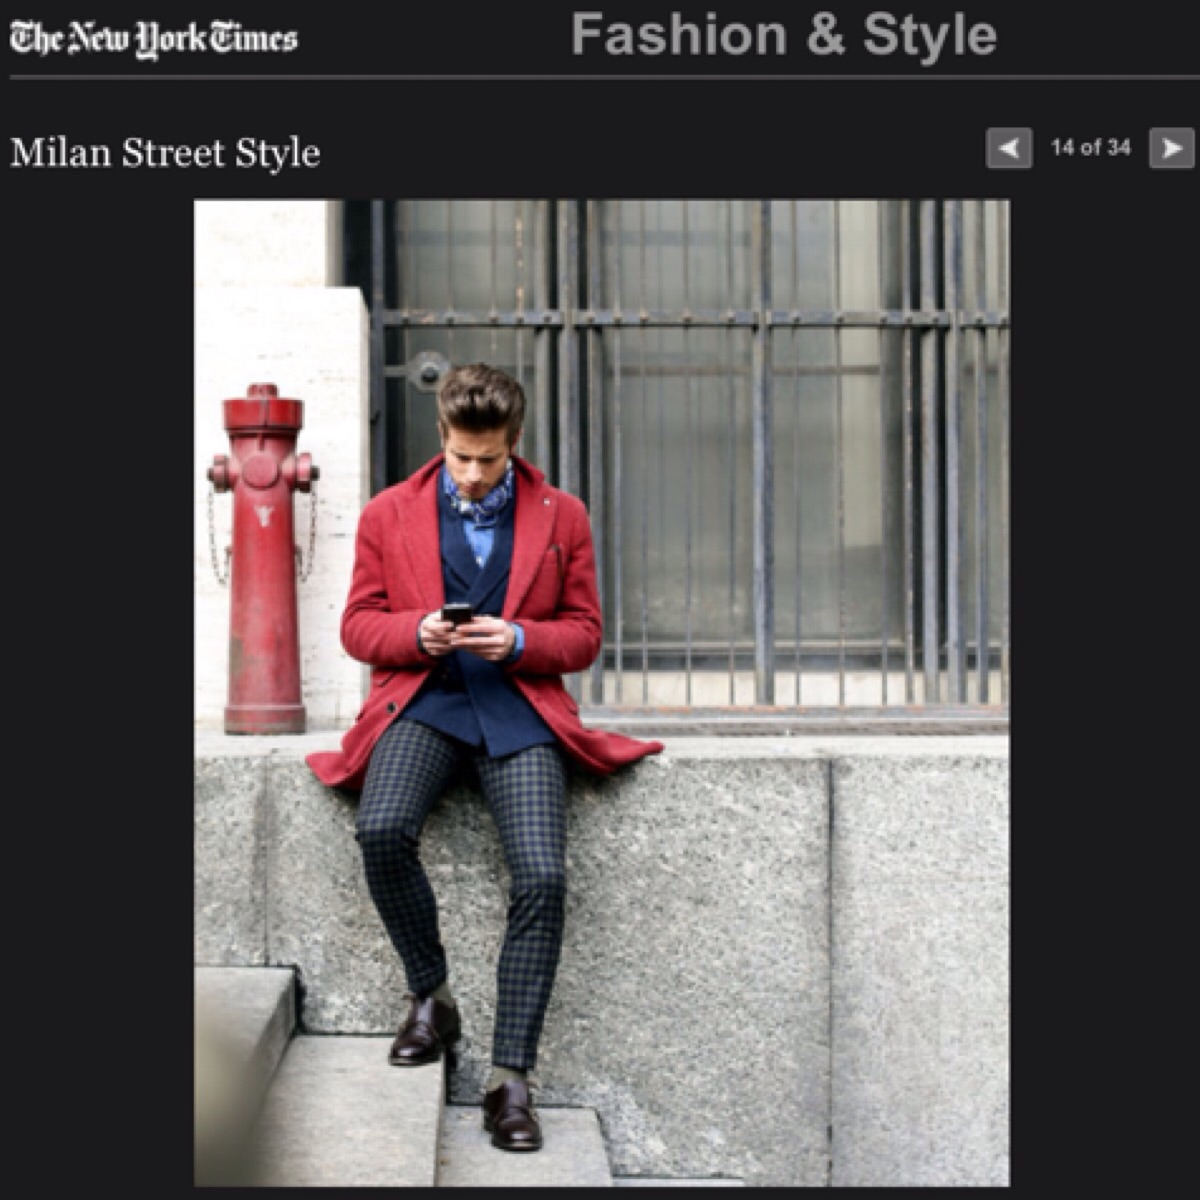 new york times fashion